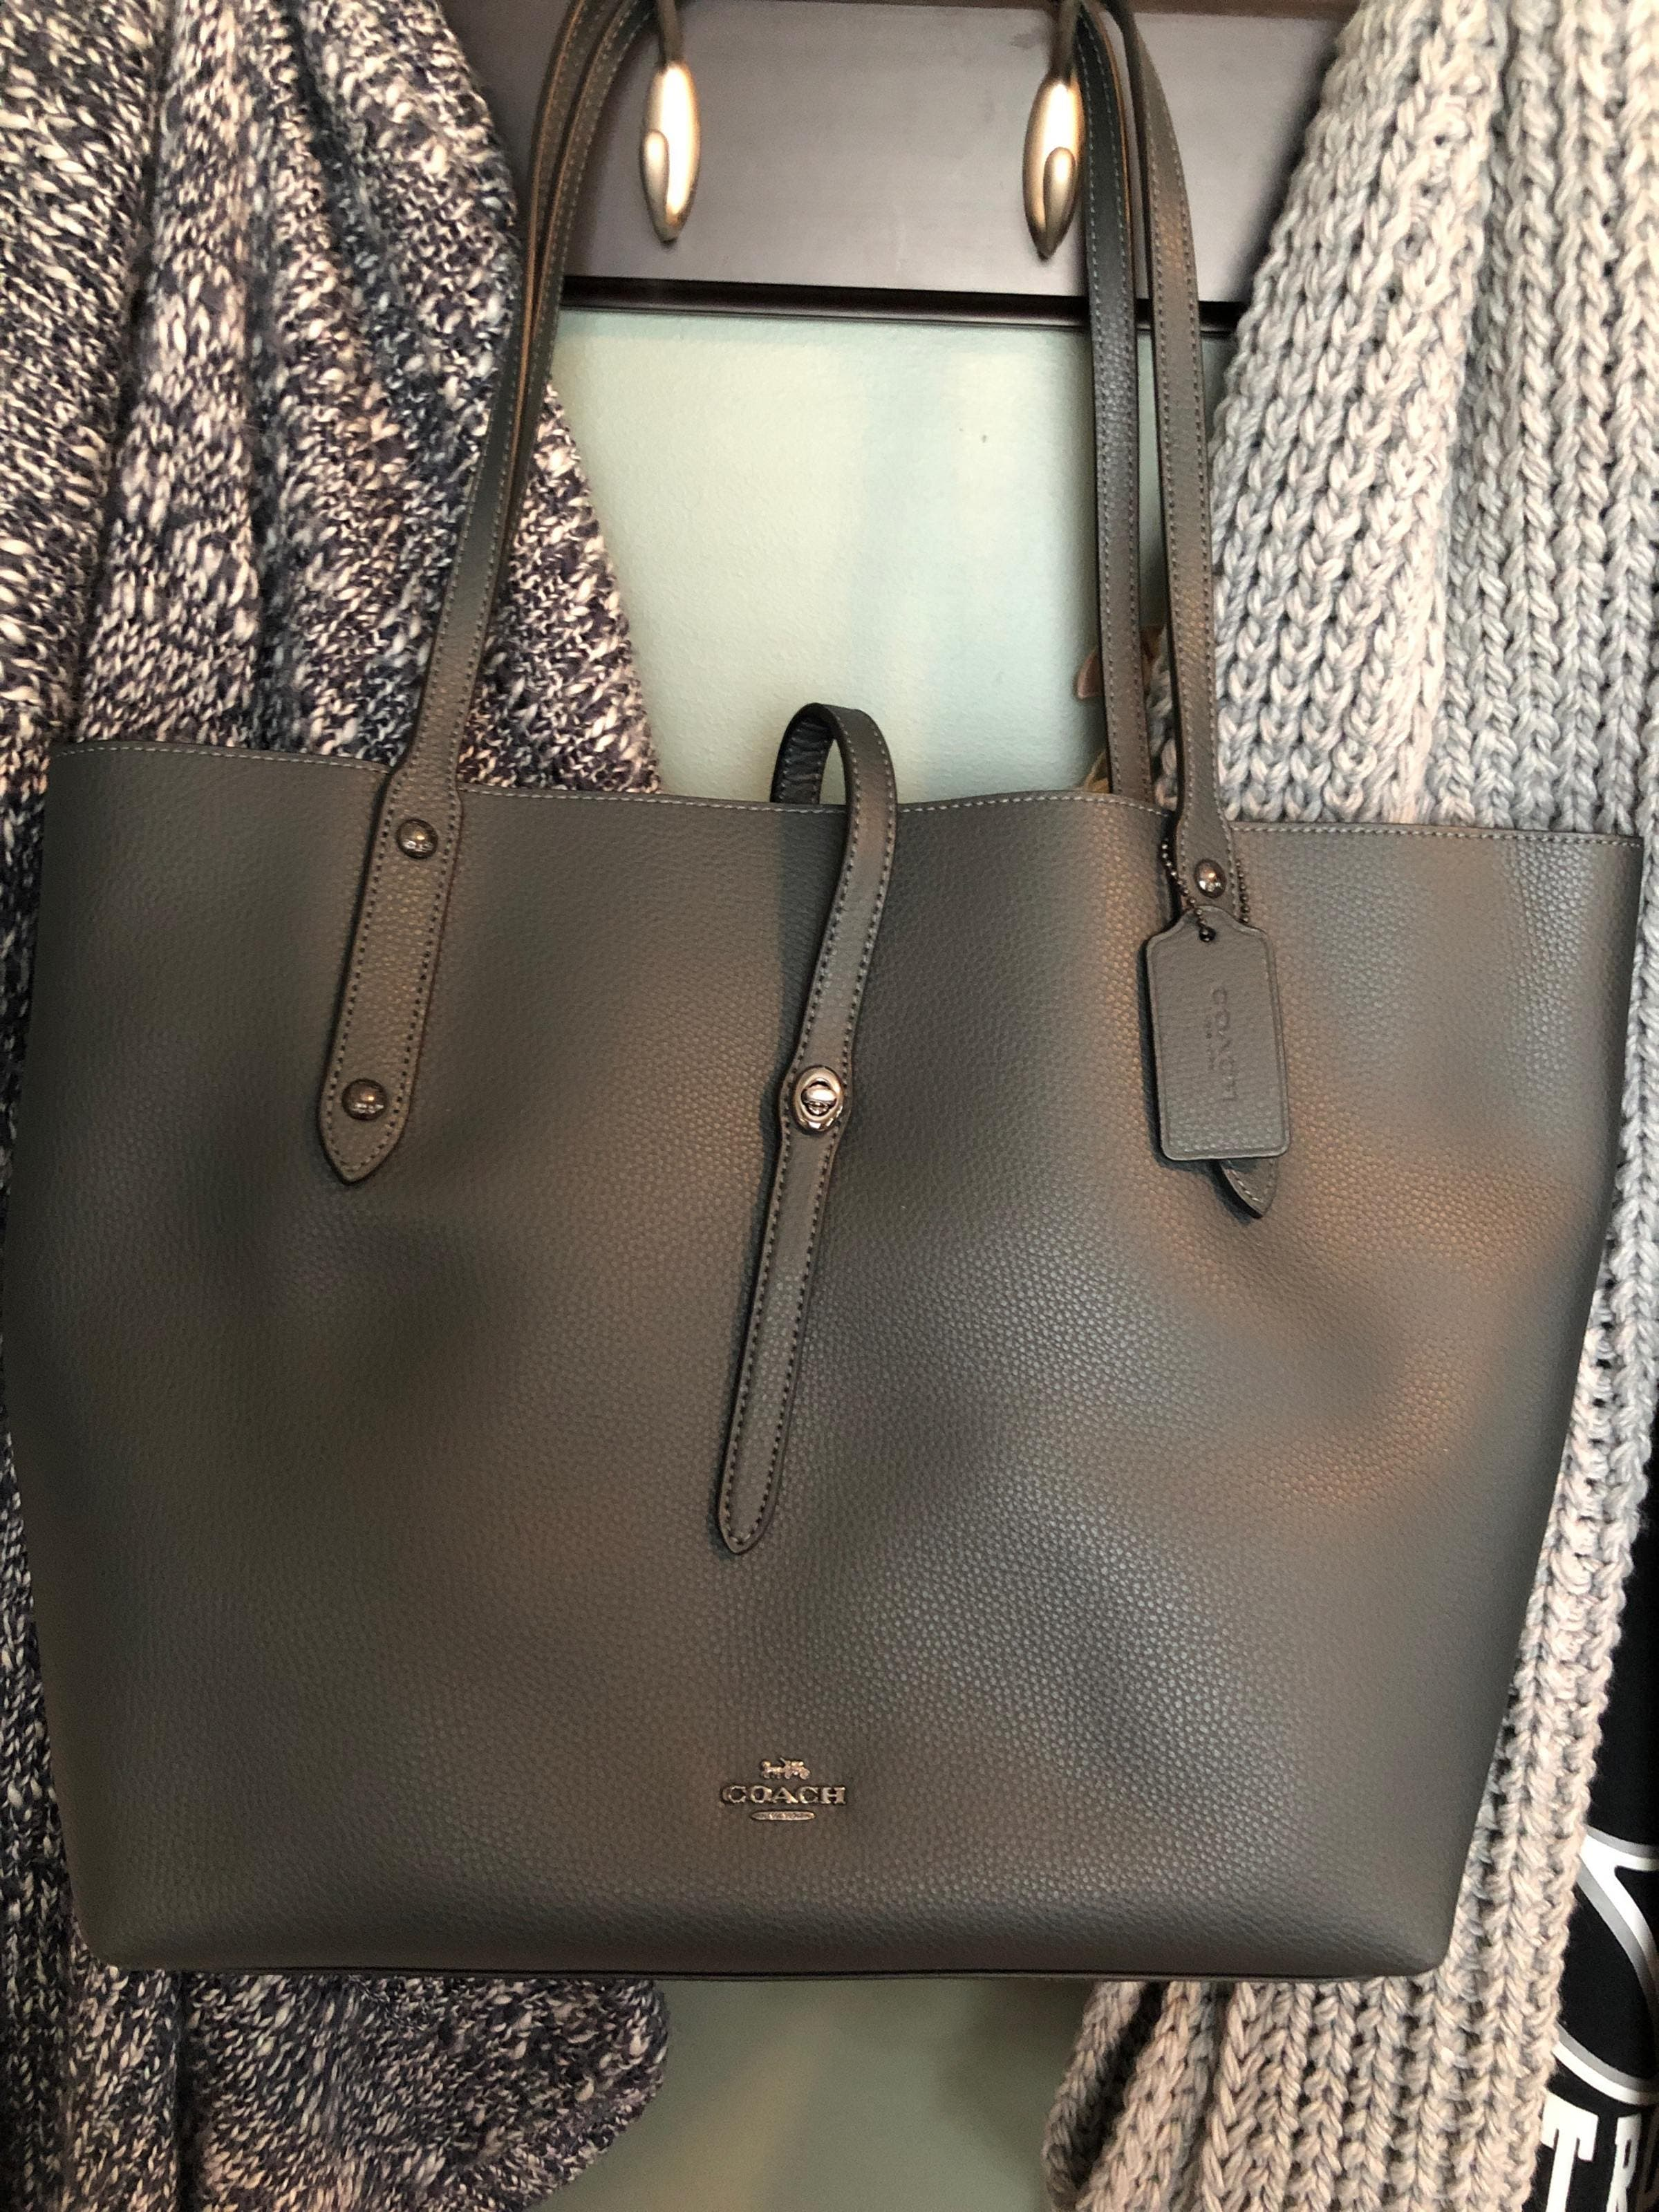 850cc00c99 Cypress Market Tote by Coach Handbags for $45 | Rent the Runway